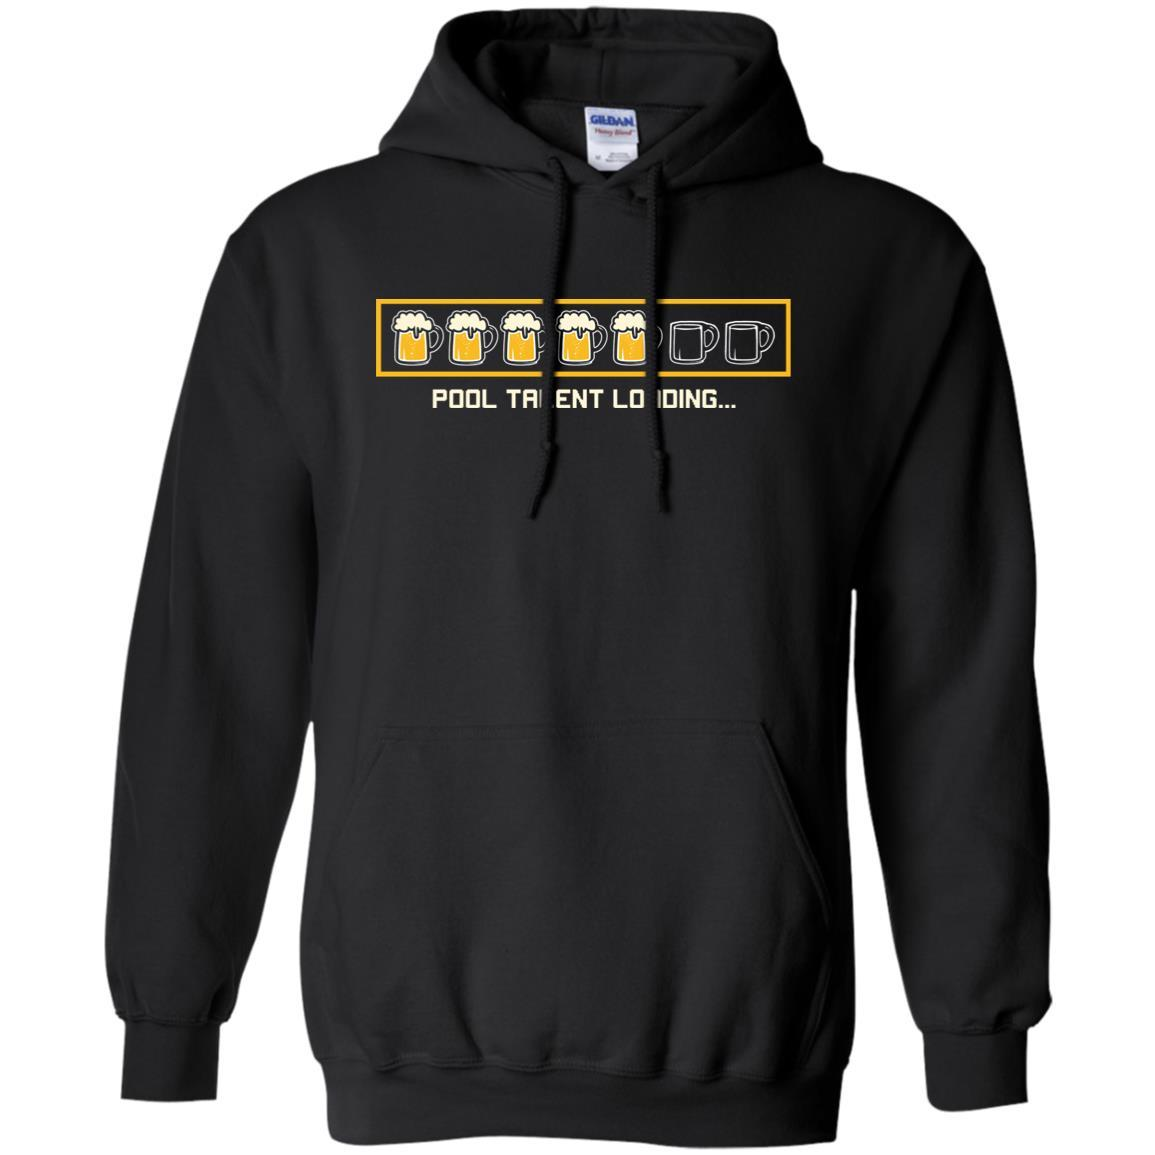 Pool Talent Hoodie